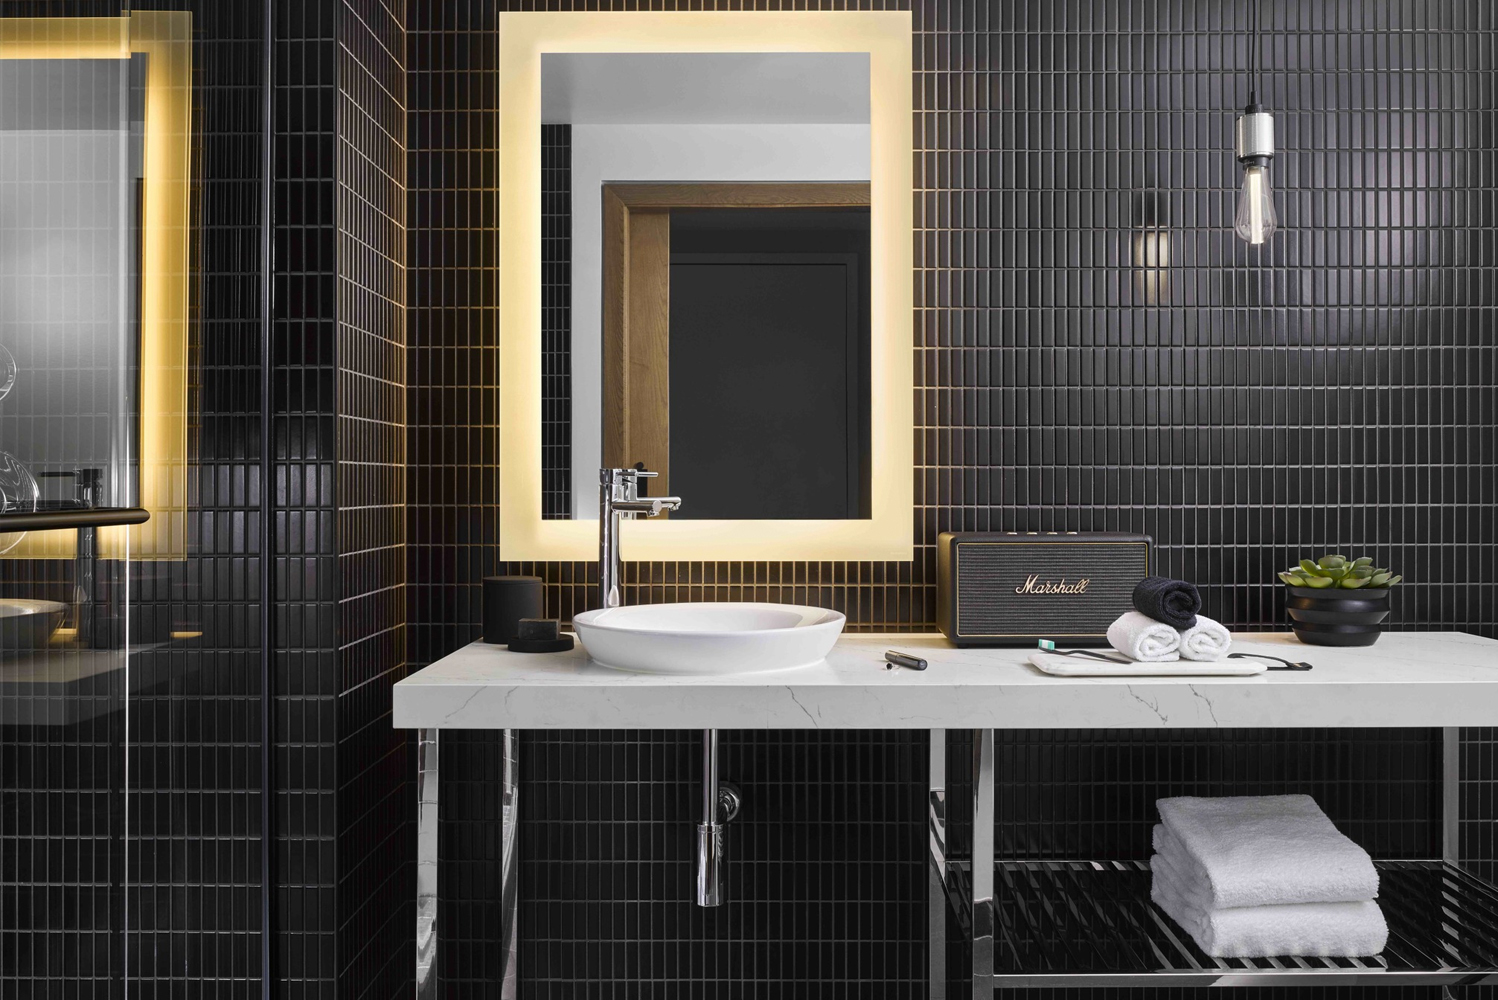 The dark bathrooms are reminiscent of backstage dressing rooms with microphone lights, robes, metal accents and black linear tiles.